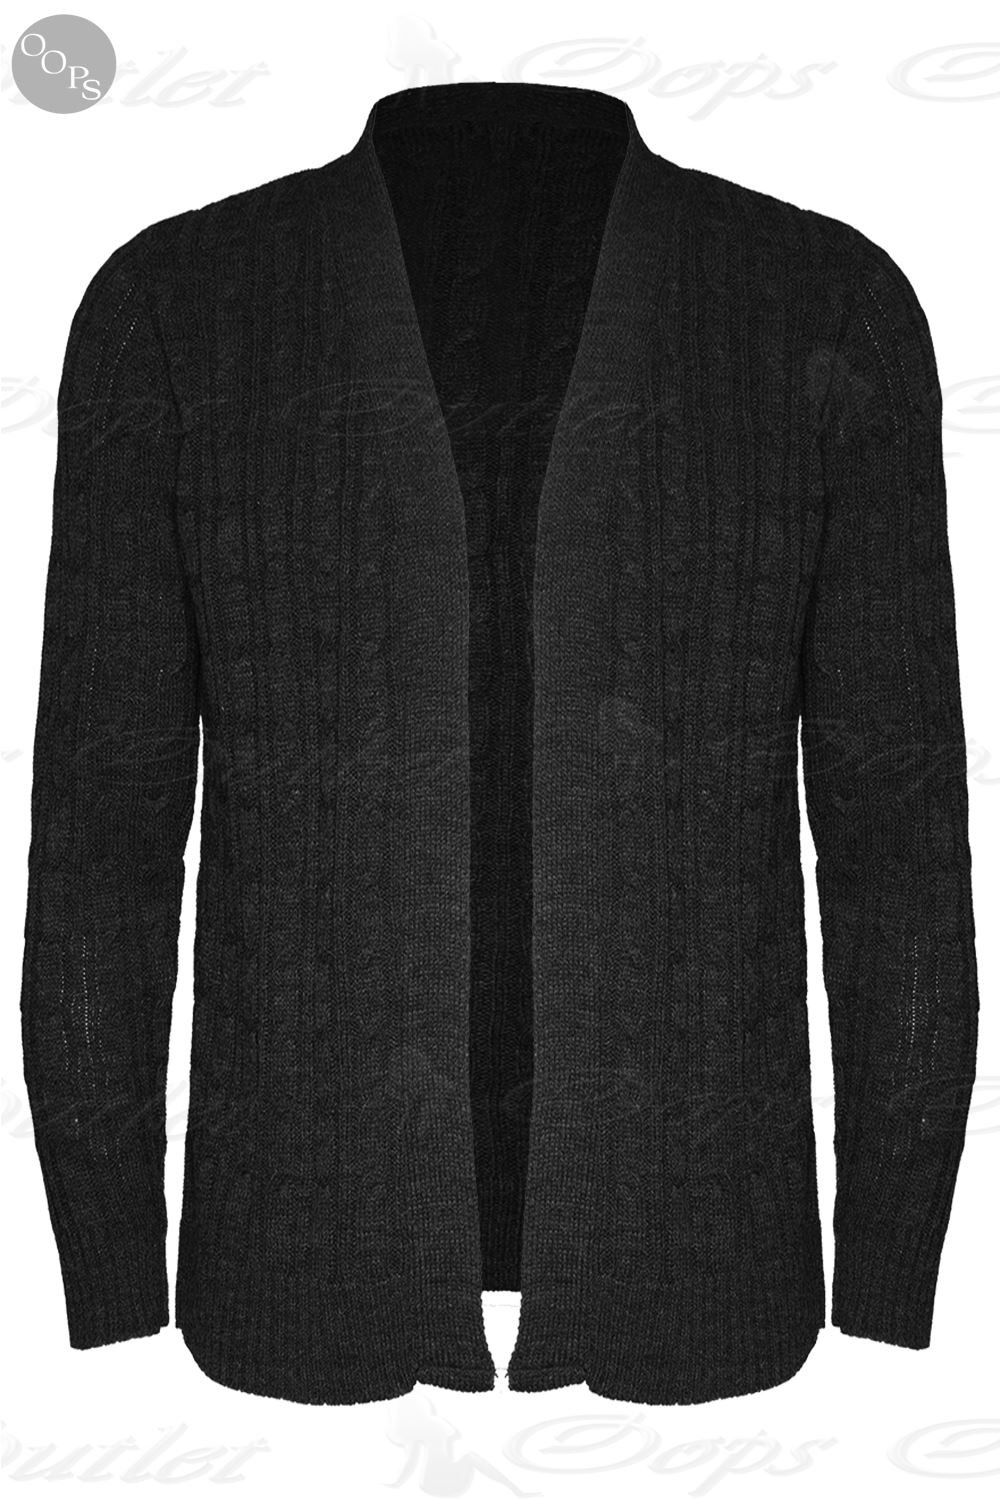 Luxury Mens Cable Knitted Designer Open Front Jacket Sweater Mens Cable Cardigan Of Top 48 Pics Mens Cable Cardigan